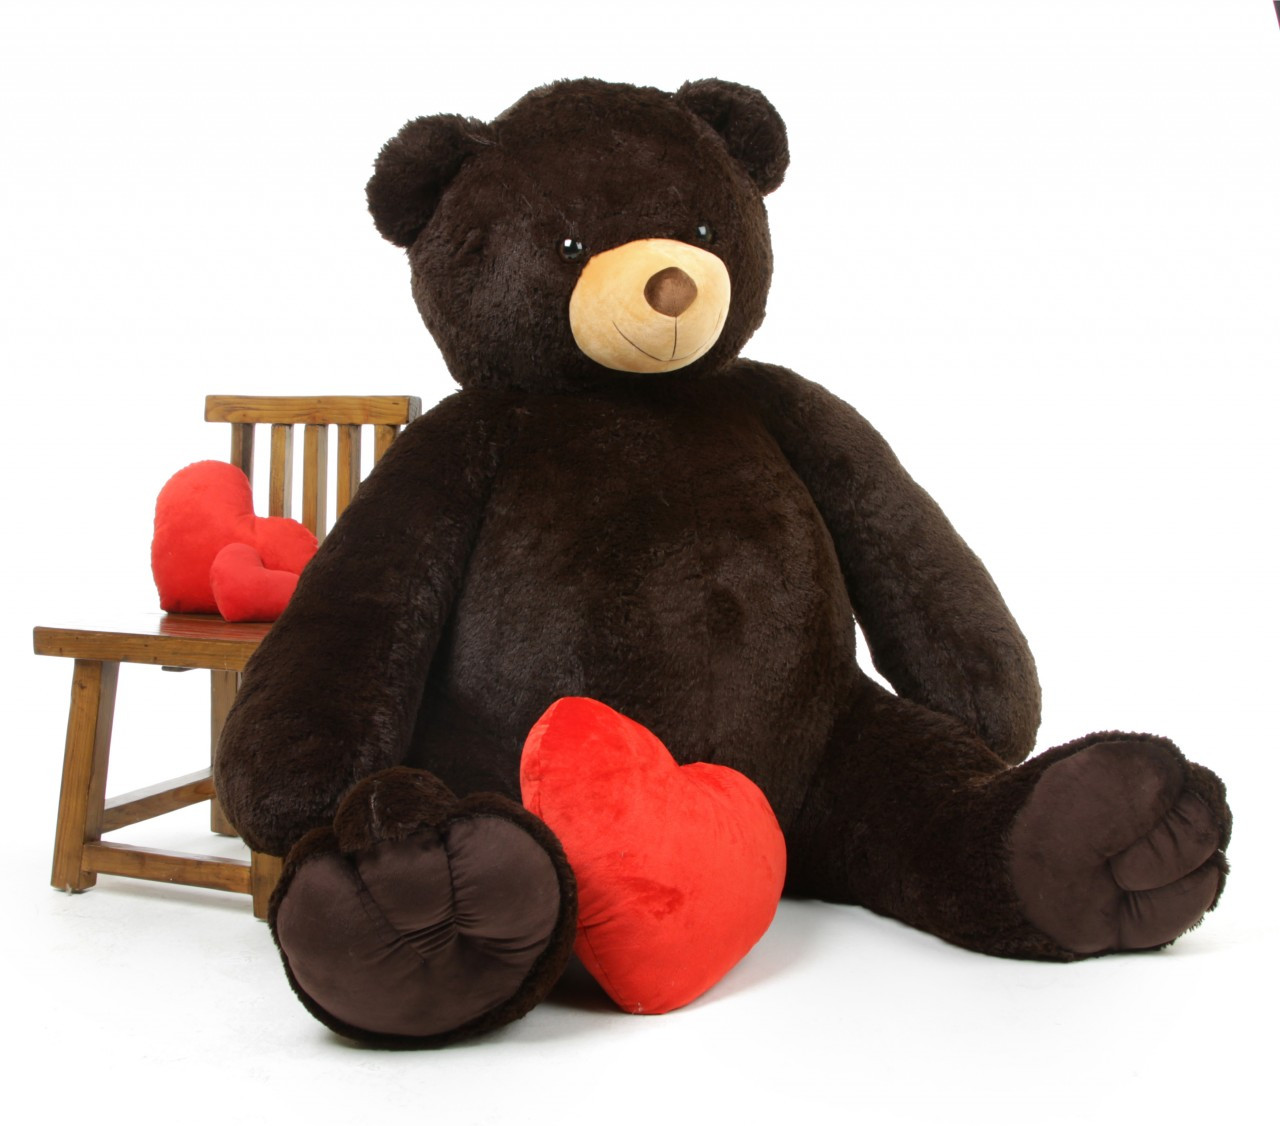 Baby Tubs Life Size Cuddly Chocolate Brown Giant Teddy Bear 65 inch